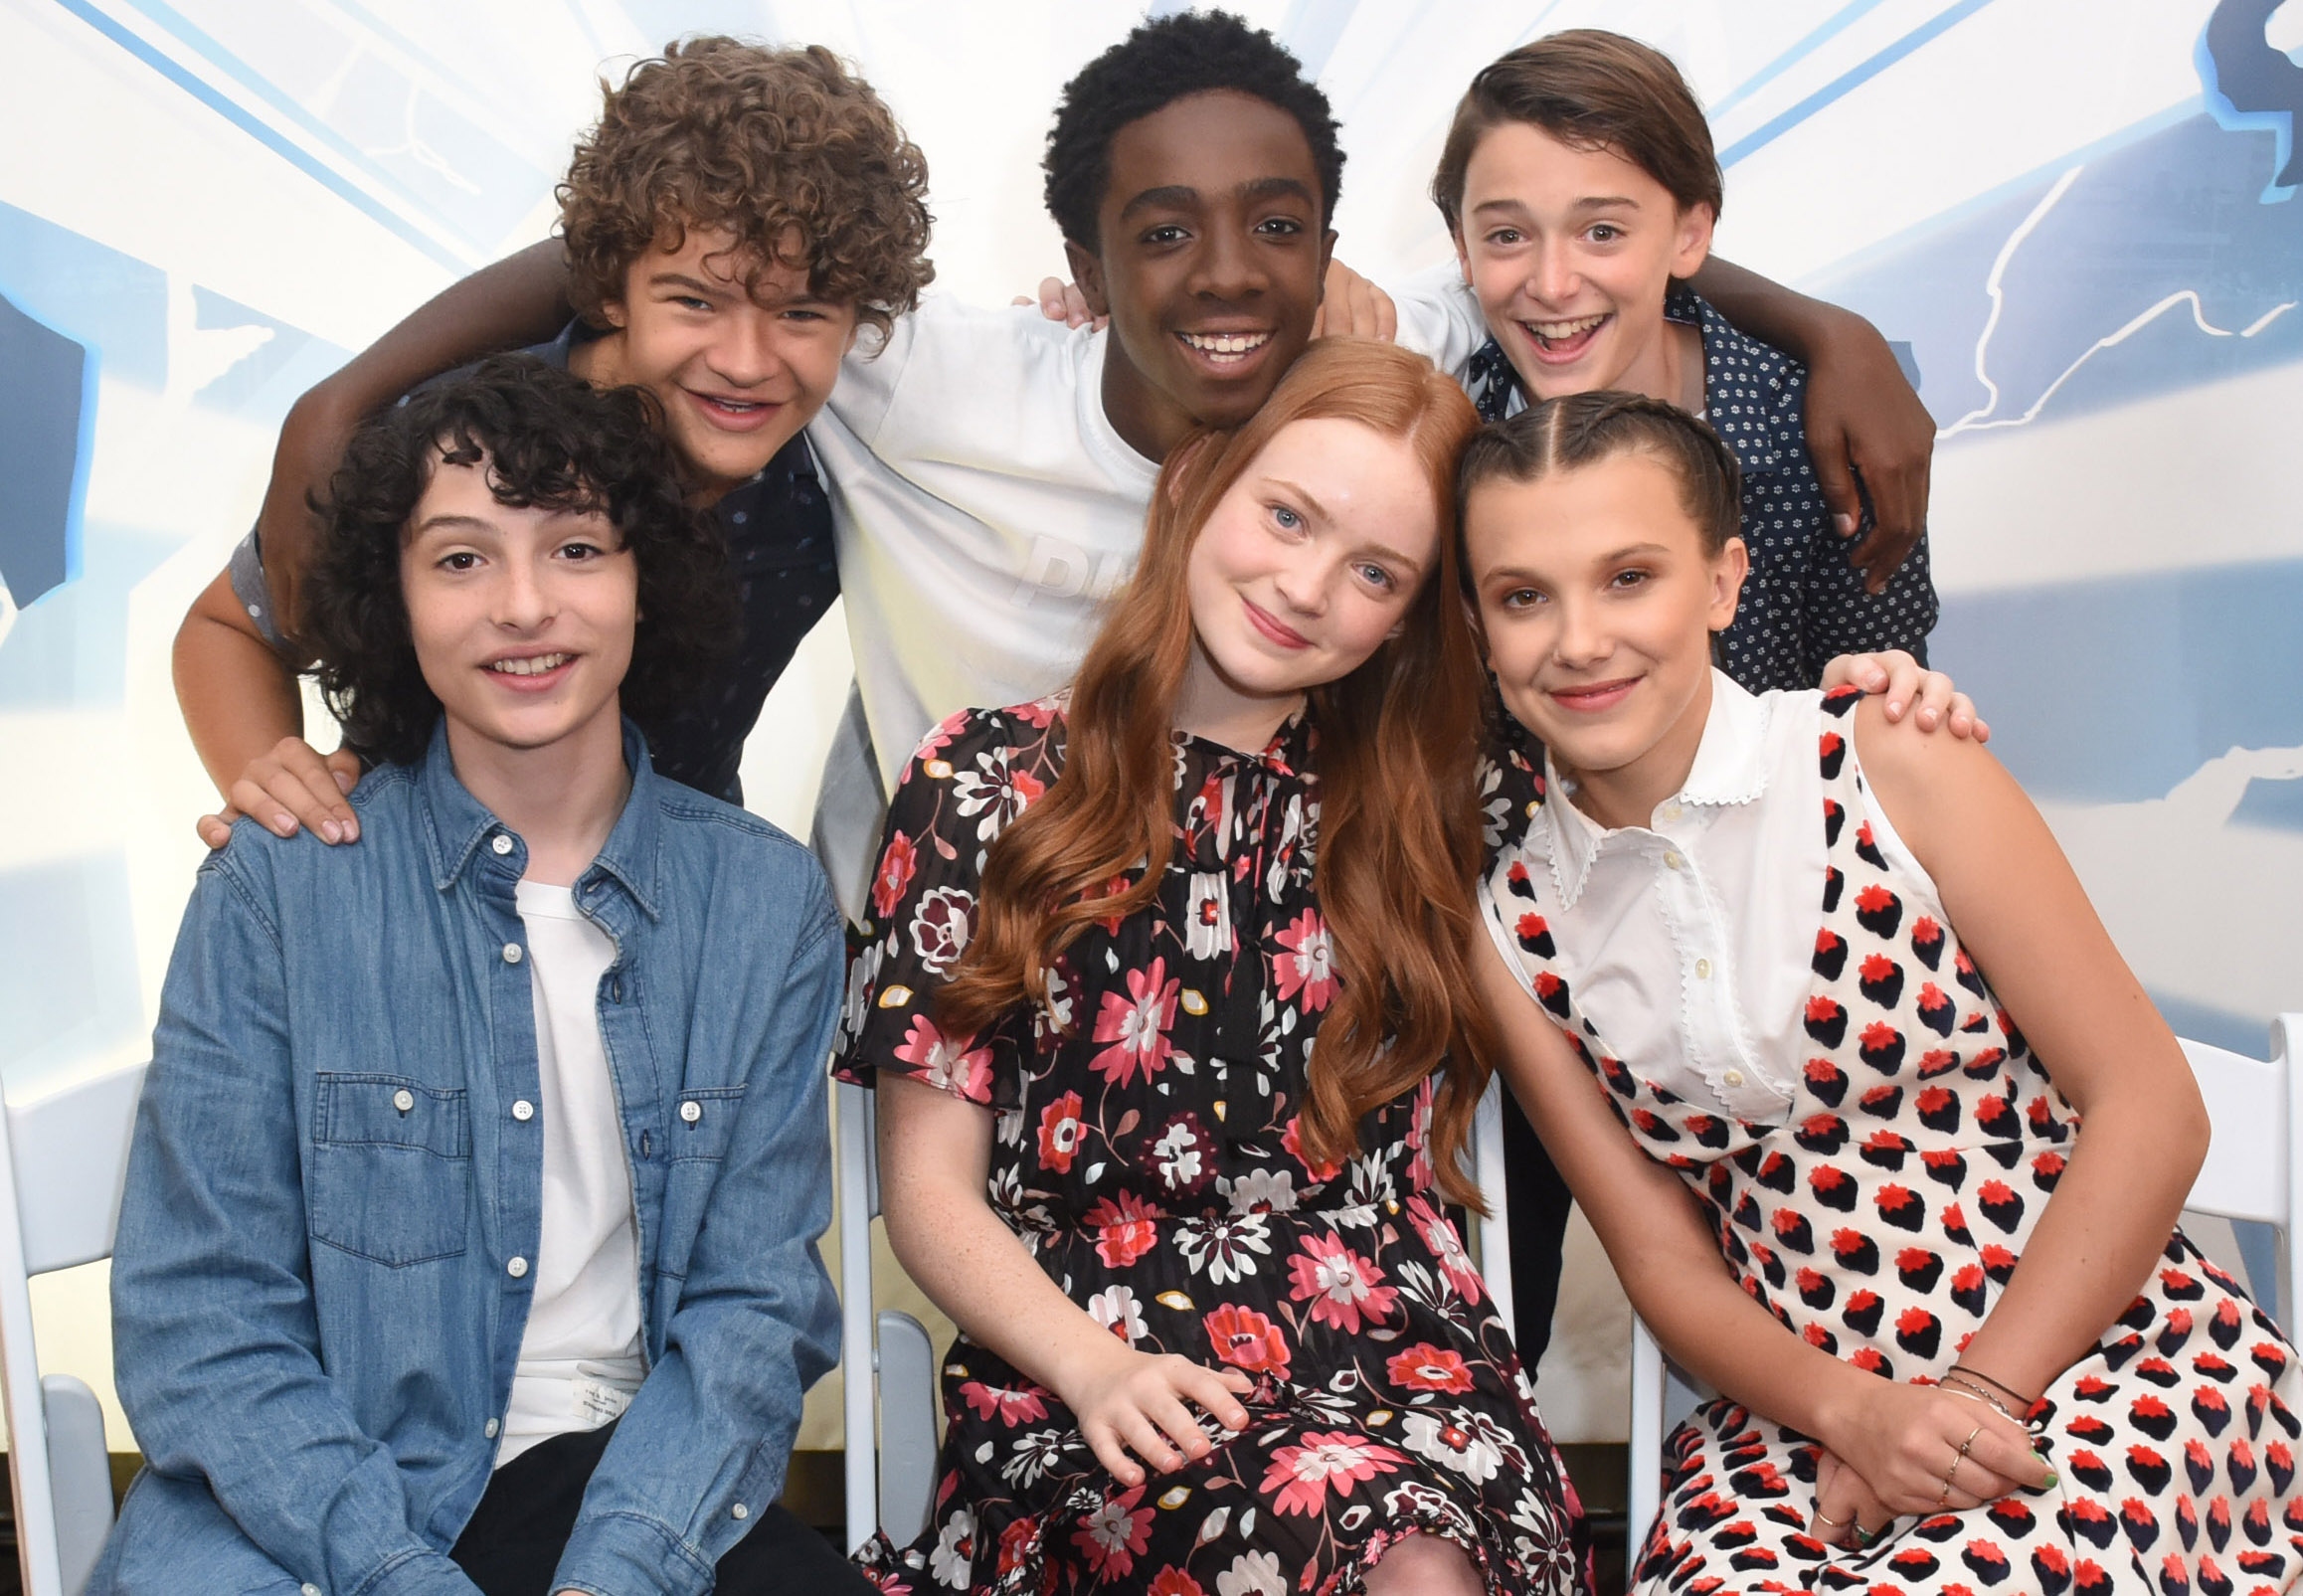 SAN DIEGO, CA - JULY 22: Gaten Matarazzo, Caleb McLaughlin, Noah Schnapp, Finn Wolfhard, Sadie Sink and Millie Bobby Brown attend SiriusXM's Entertainment Weekly Radio Channel Broadcasts From Comic Con 2017 at Hard Rock Hotel San Diego on July 22, 2017 in San Diego, California. (Photo by Vivien Killilea/Getty Images for SiriusXM)